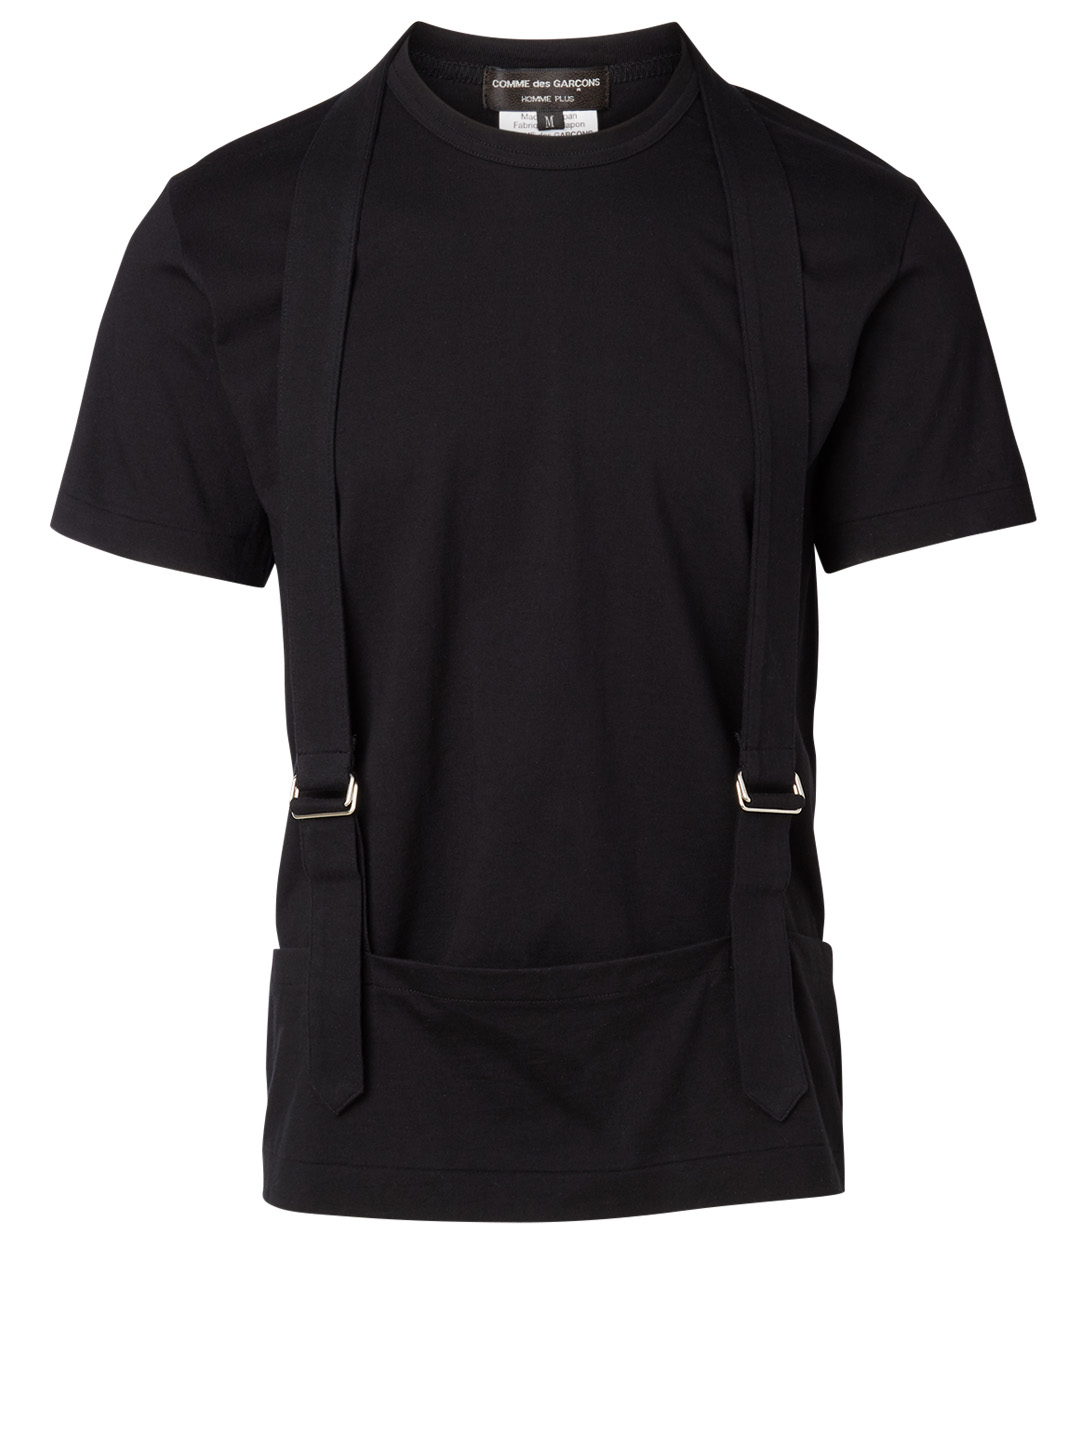 COMME DES GARÇONS HOMME PLUS Cotton T-Shirt With Suspenders Men's Black